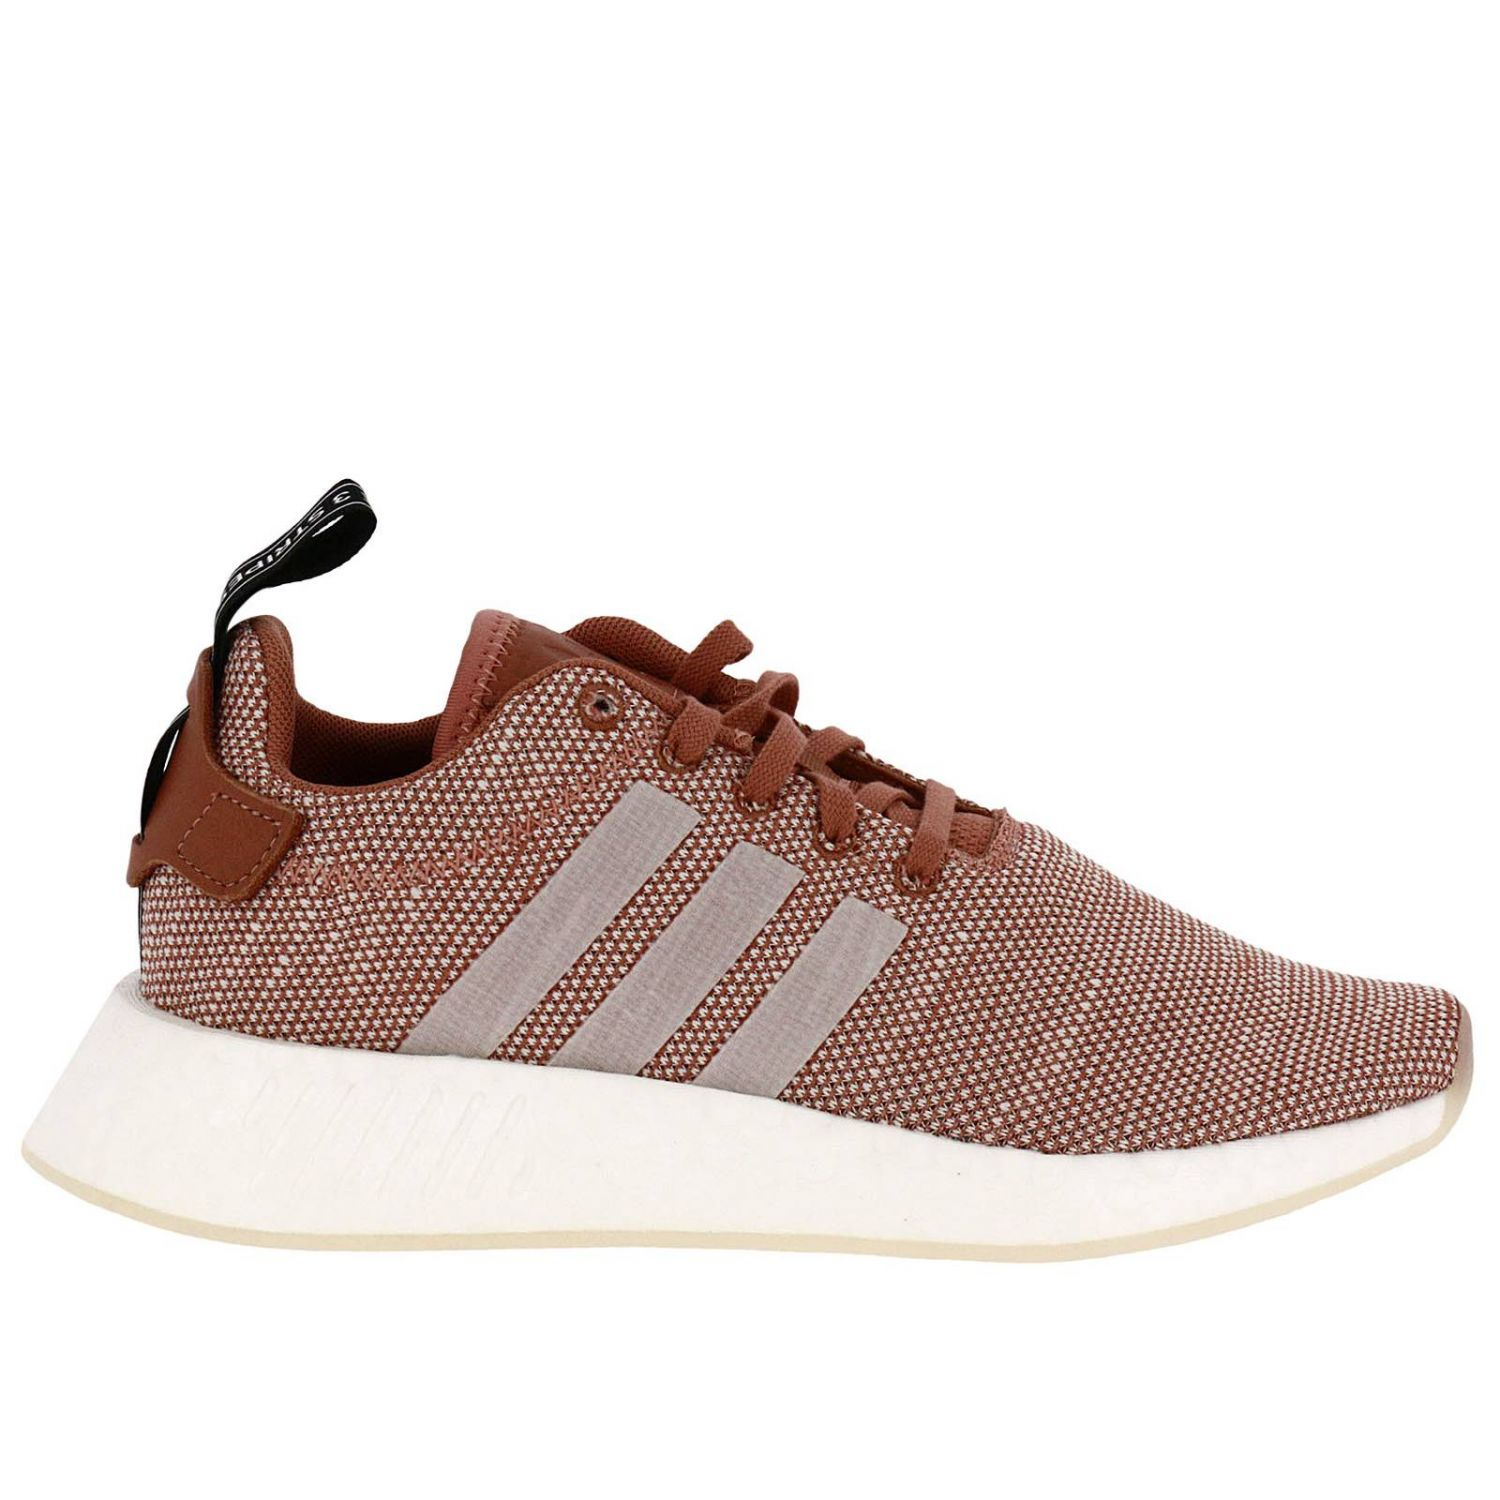 Sneakers Adidas Originals Nmd-r2 W Primeknit Sneakers With Micro Effect 8311628